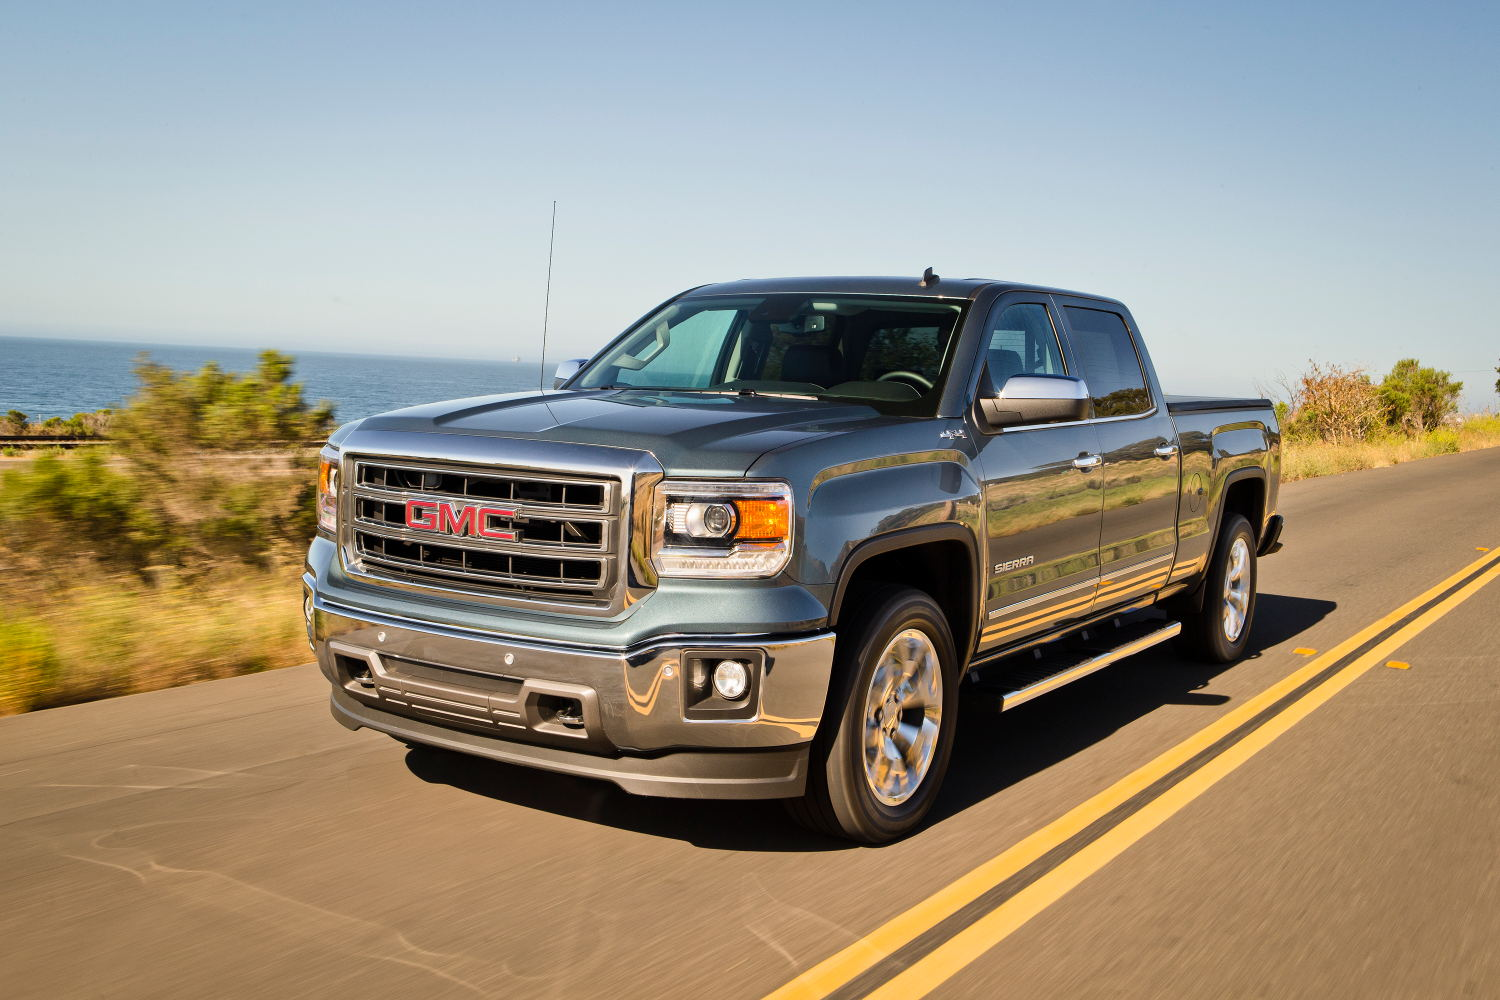 Silverado Vs Sierra >> Comparison - Chevrolet Silverado 1500 Double Cab LTZ 2015 - vs - GMC Sierra 1500 Double Cab SLT ...